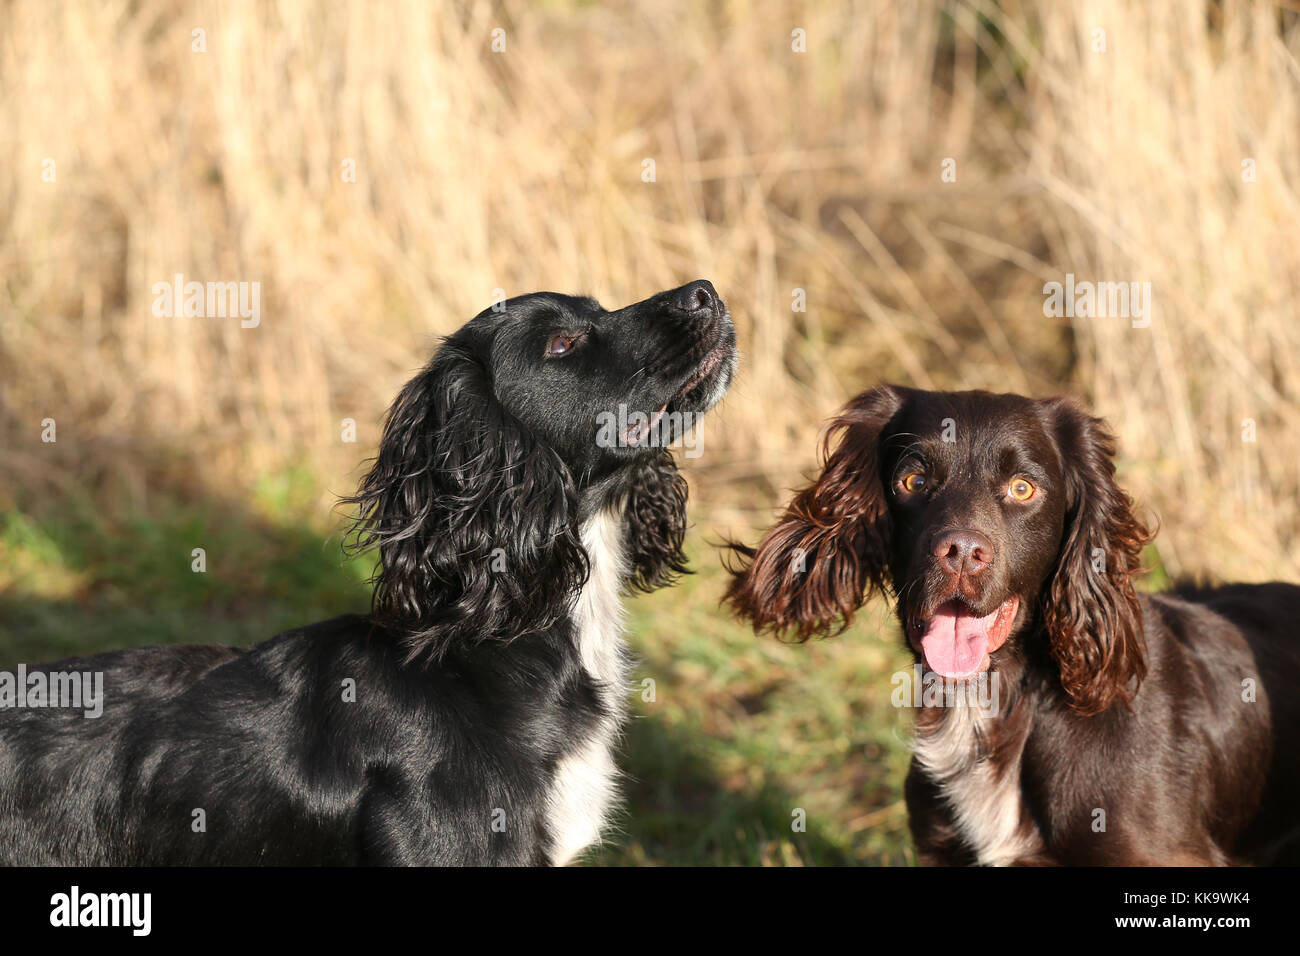 Spaniel-working Cocker Spaniel hunde Cocker arbeiten Stockbild